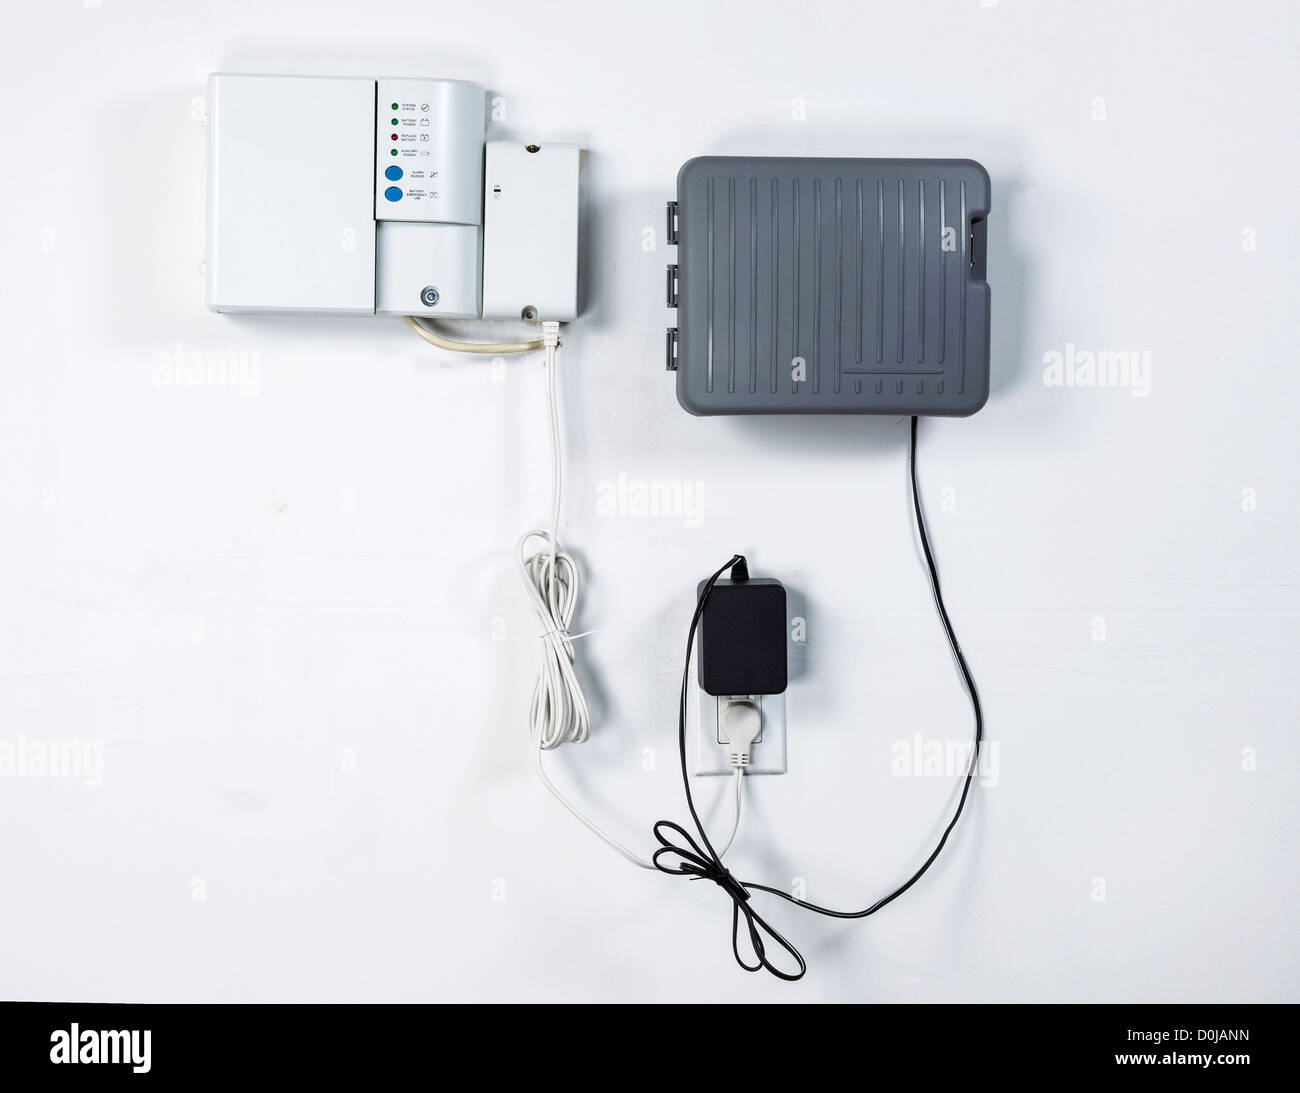 Home utilities consisting of cable and water sprinkler system with backup battery pack on garage wall - Stock Image